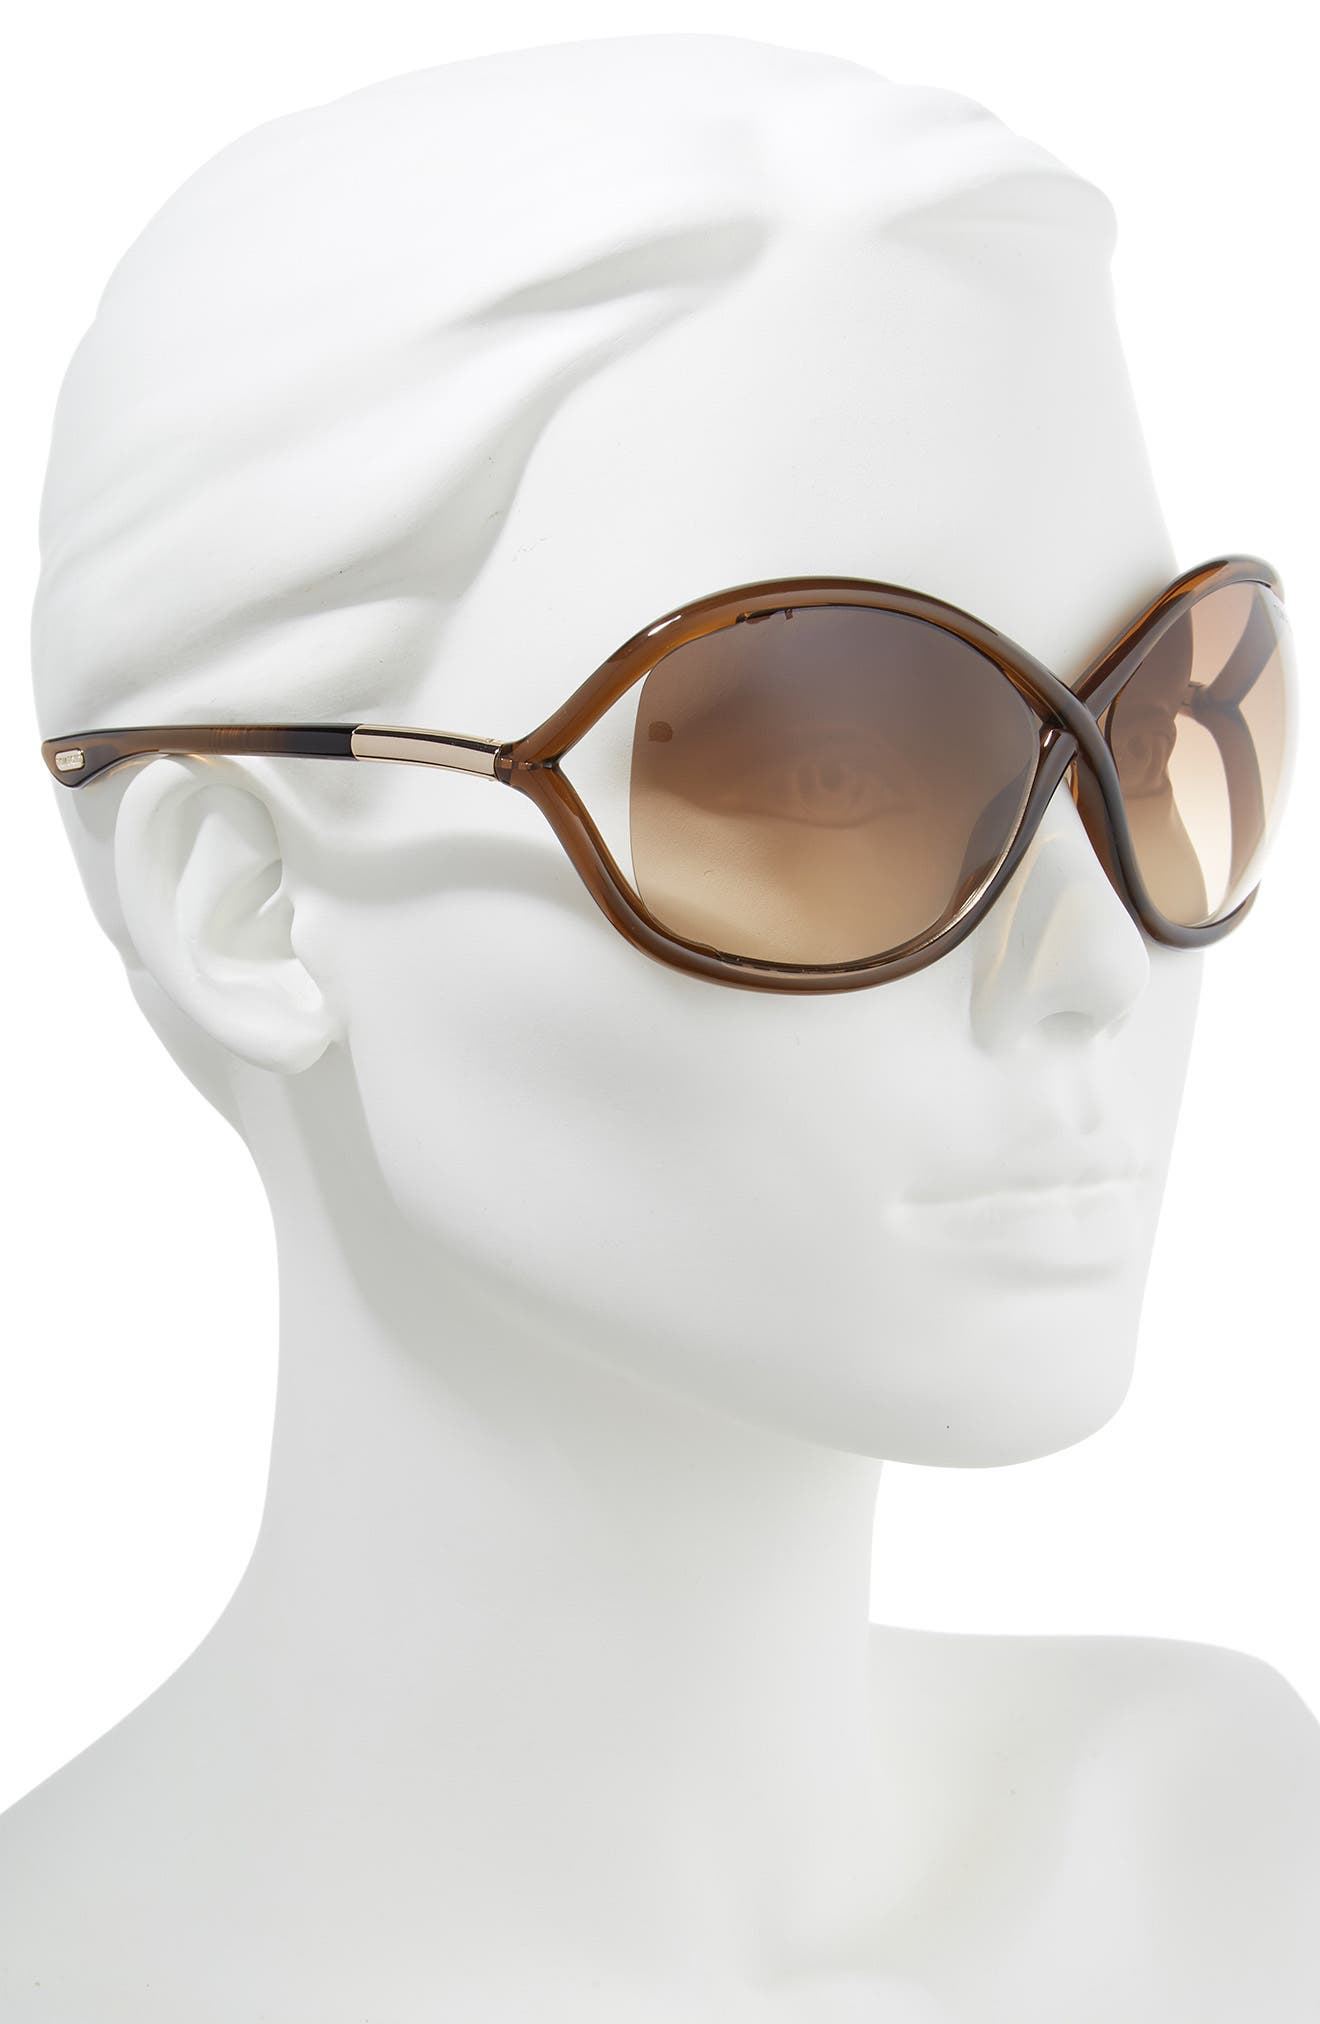 'Whitney' 64mm Open Side Sunglasses,                             Alternate thumbnail 2, color,                             DARK BROWN